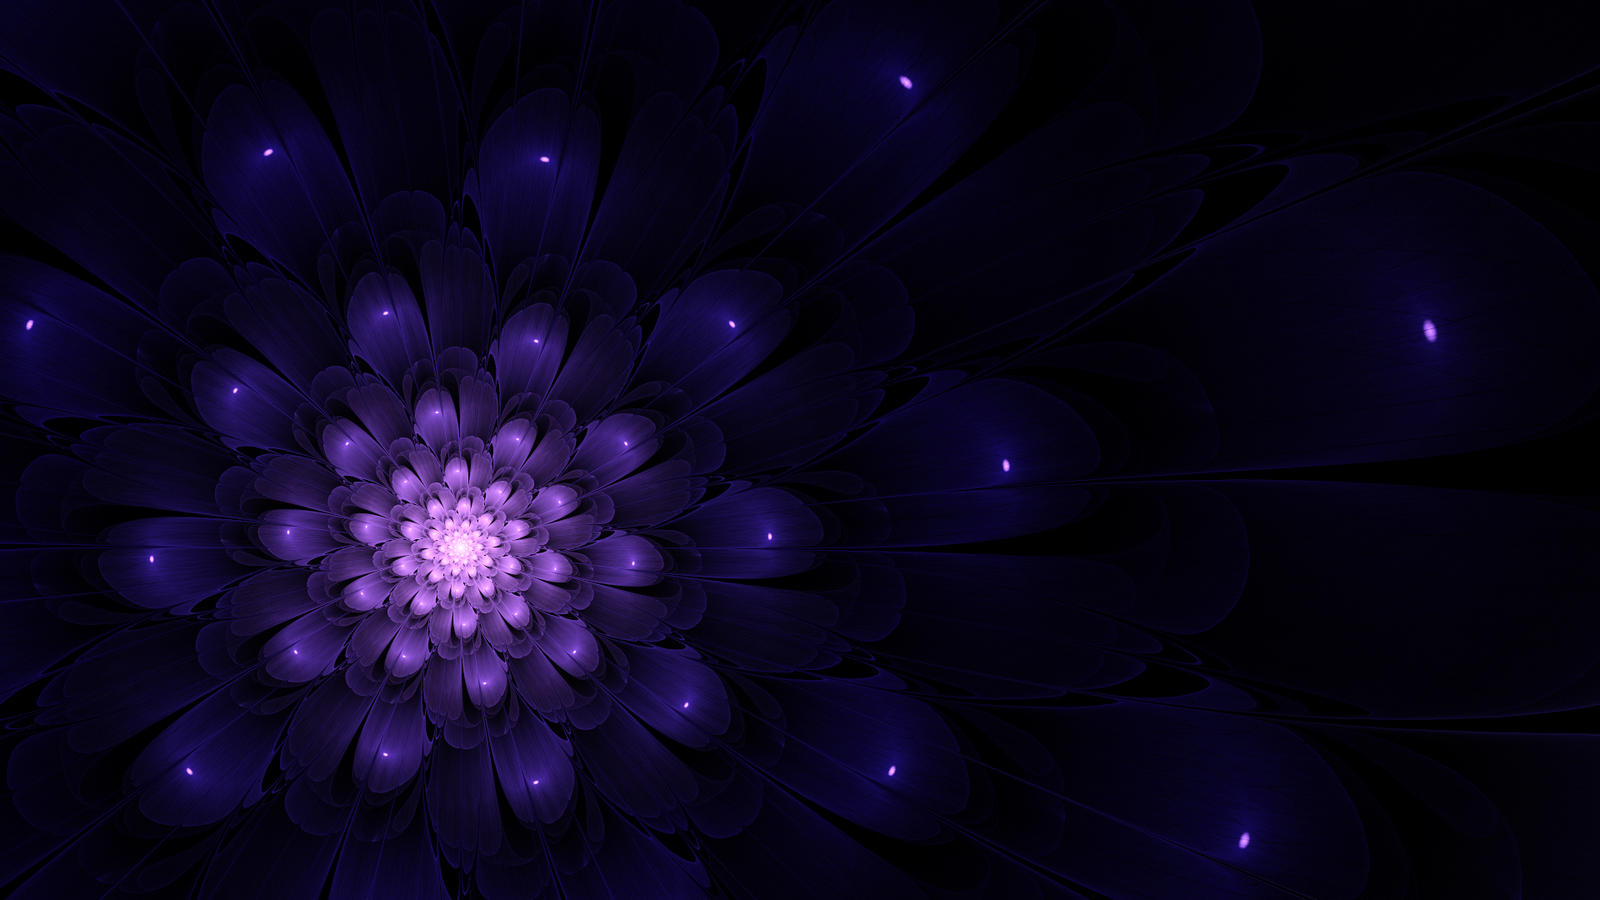 indigo abstract wallpaper hd - photo #3